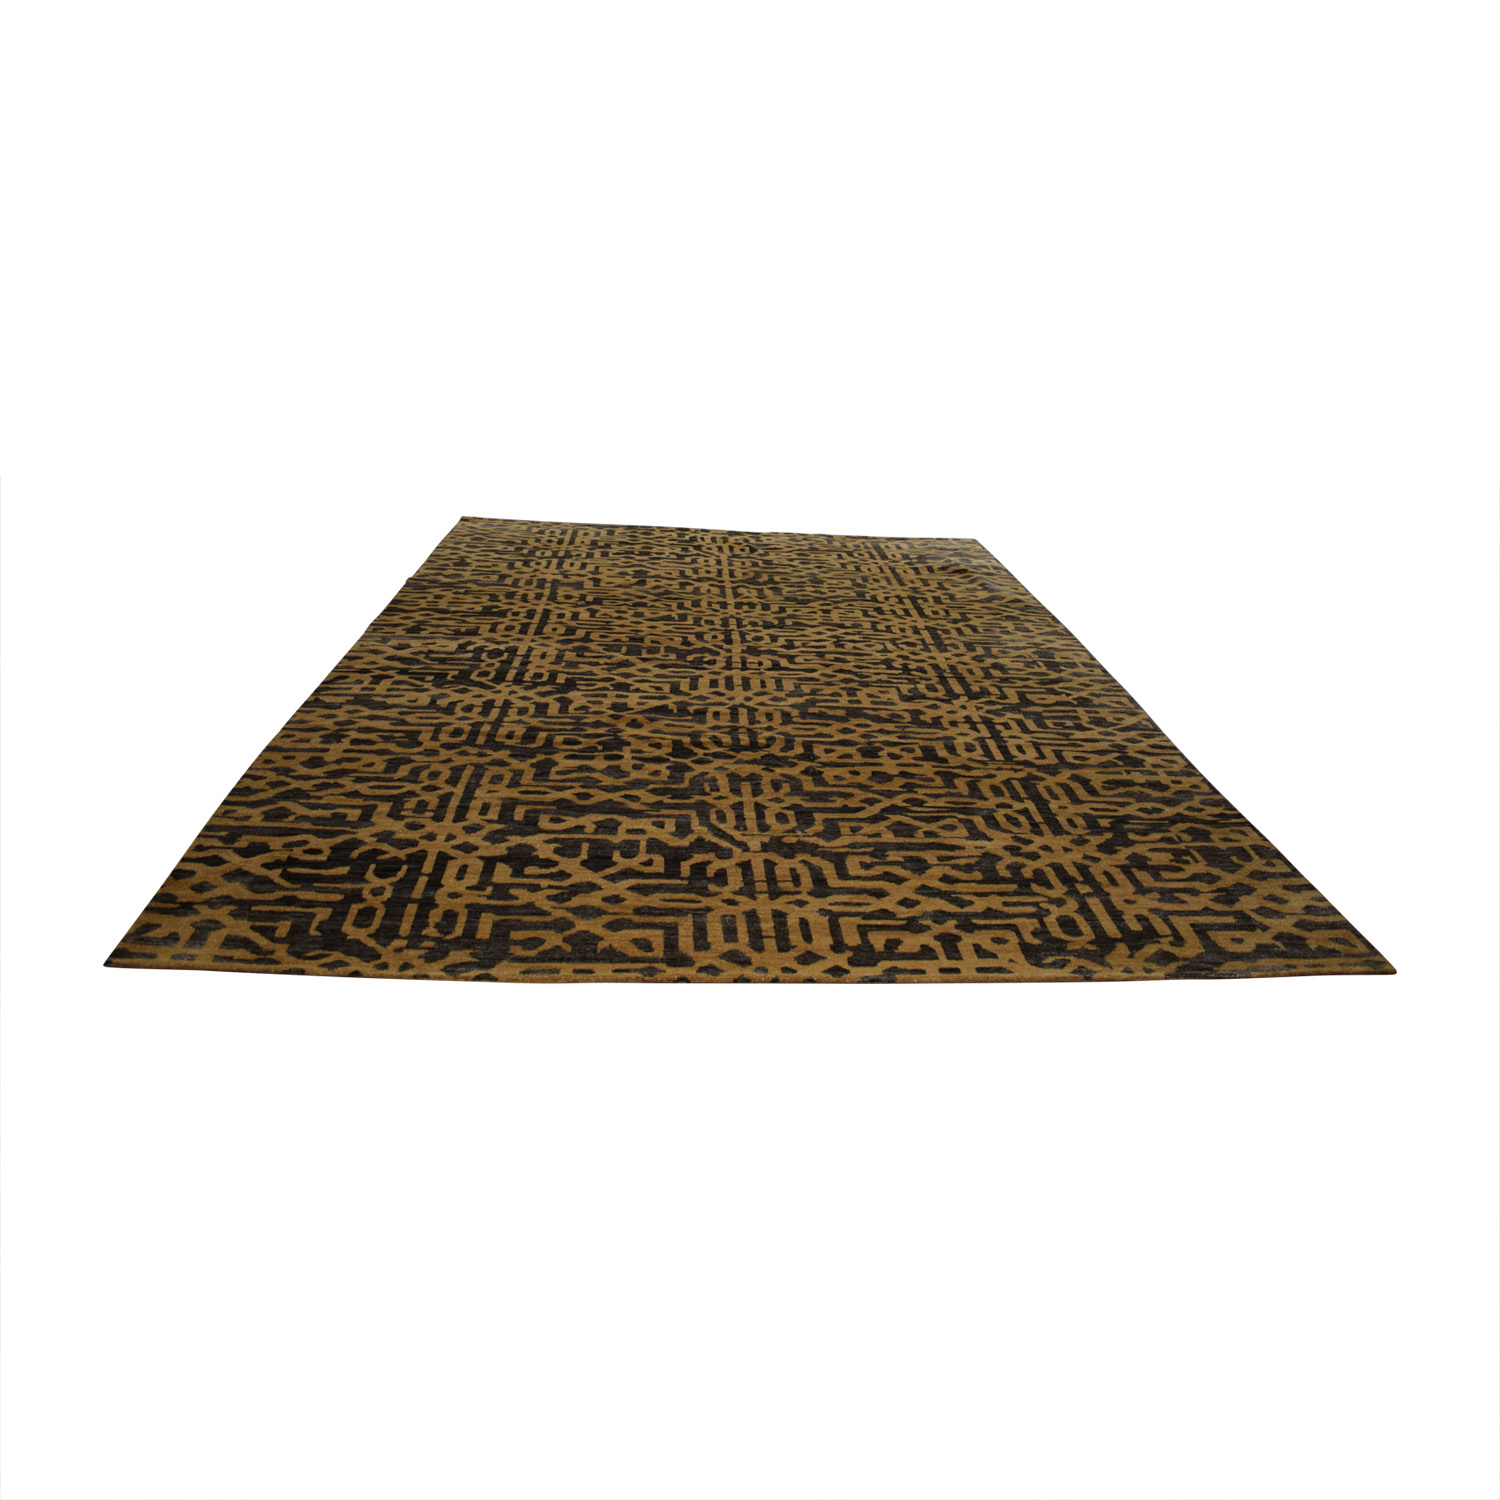 Obeetee Obeetee Handknotted Lattice Chocolate and Tan Rug coupon